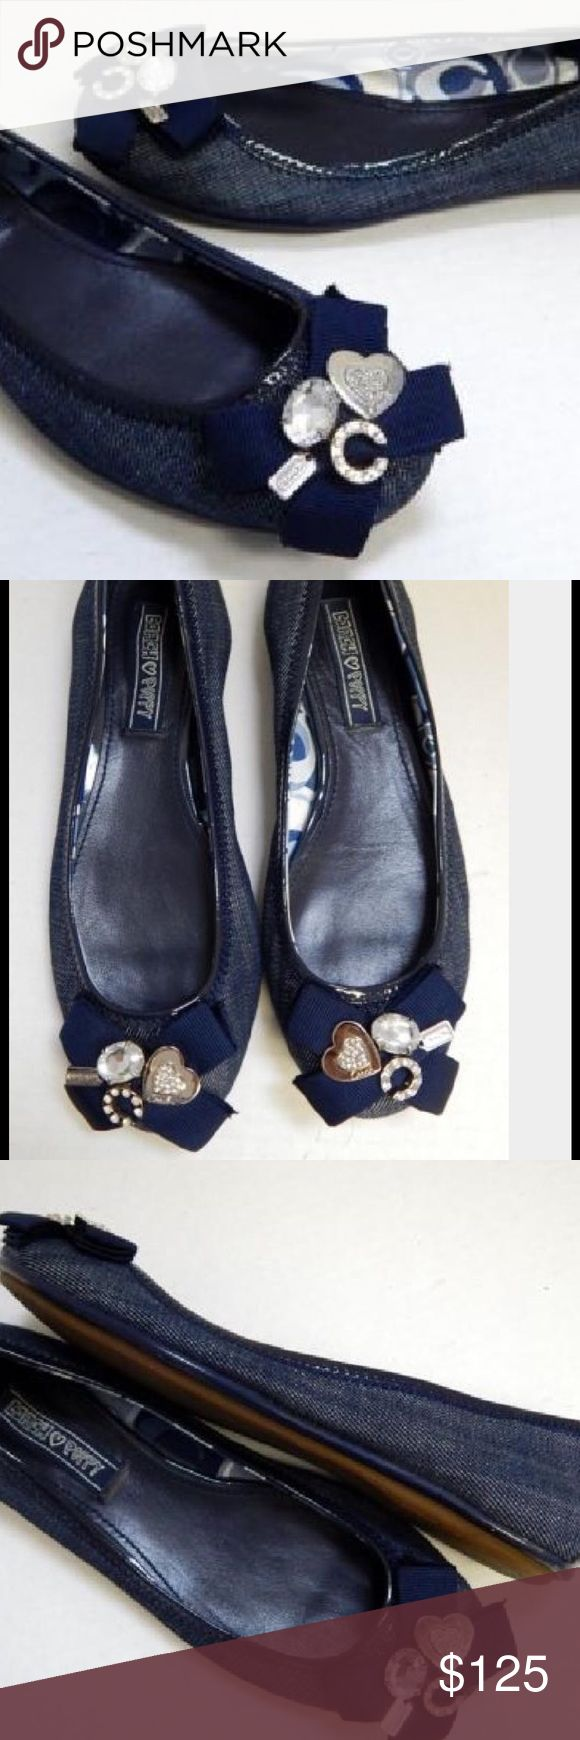 Coach poppy blue denim ballet flats Coach poppy blue denim ballet flats gently worn. One tiny stud missing from c Coach Shoes Flats & Loafers